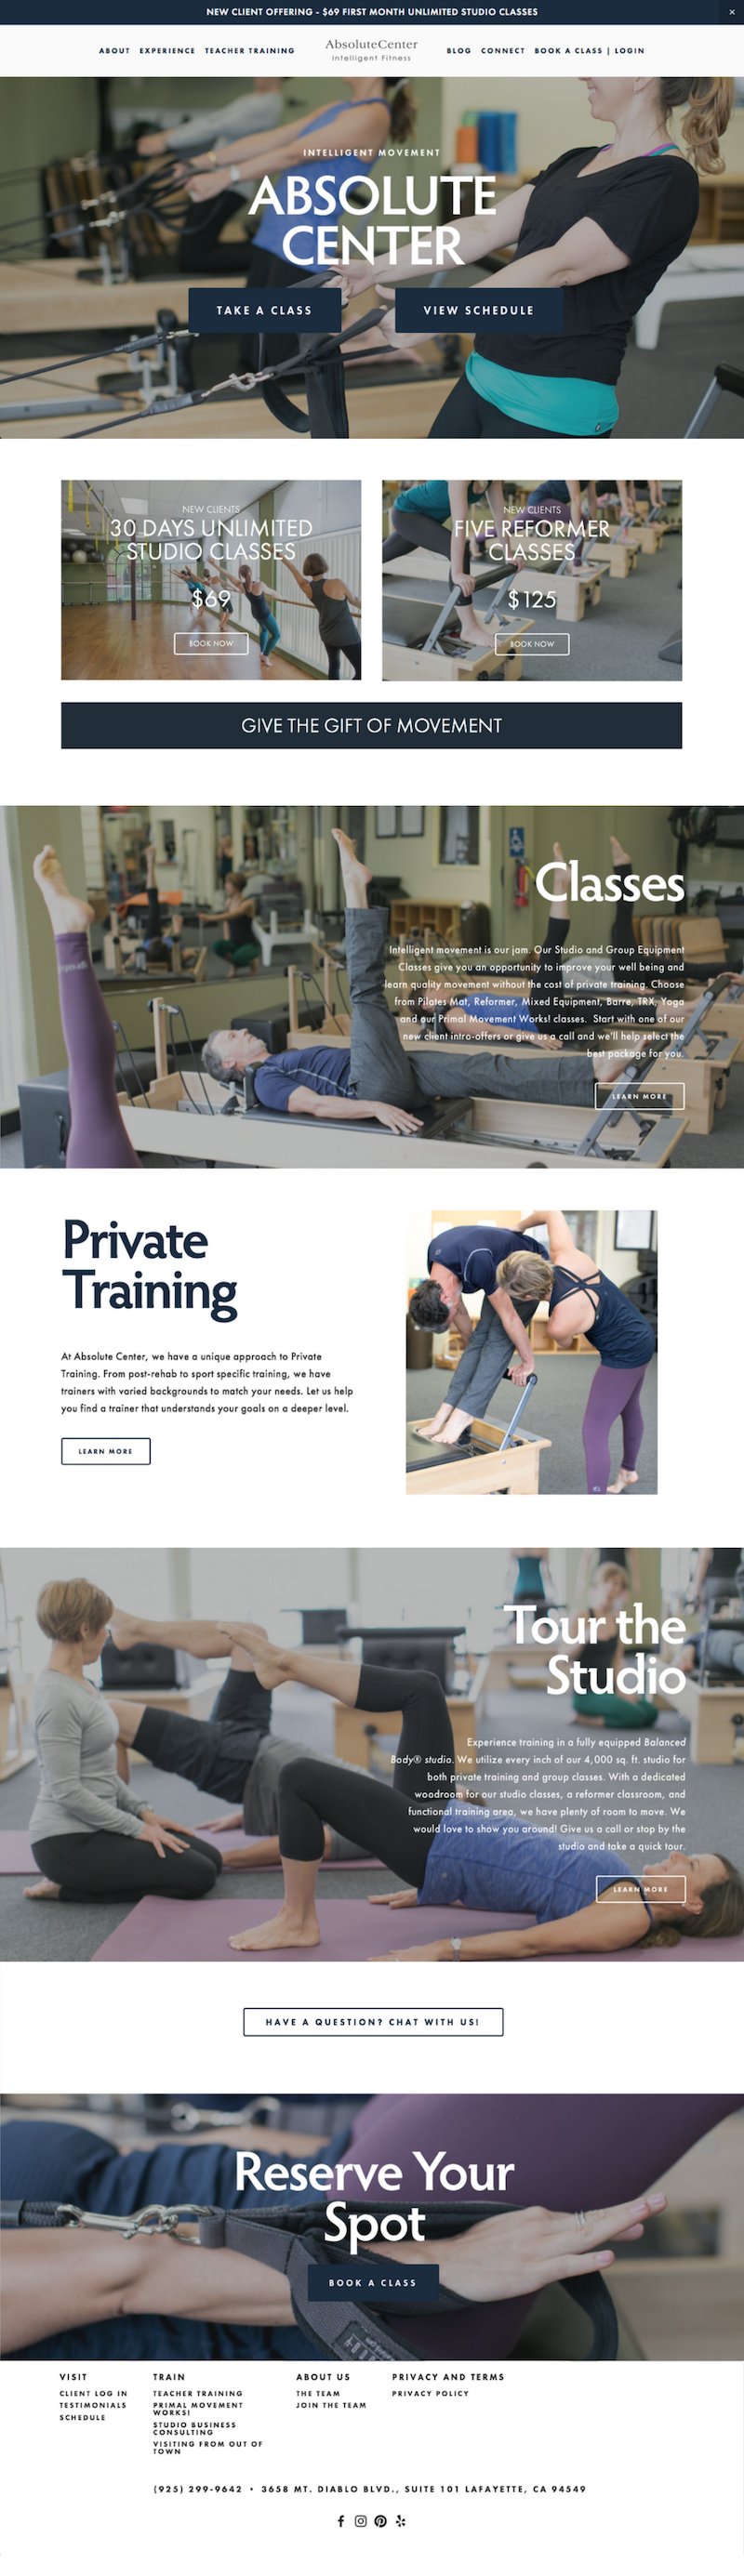 Squarespace custom built site for pilates and movement studio Absolute Center, with full MindBodyOnline Branded Web integration for smooth customer experience.